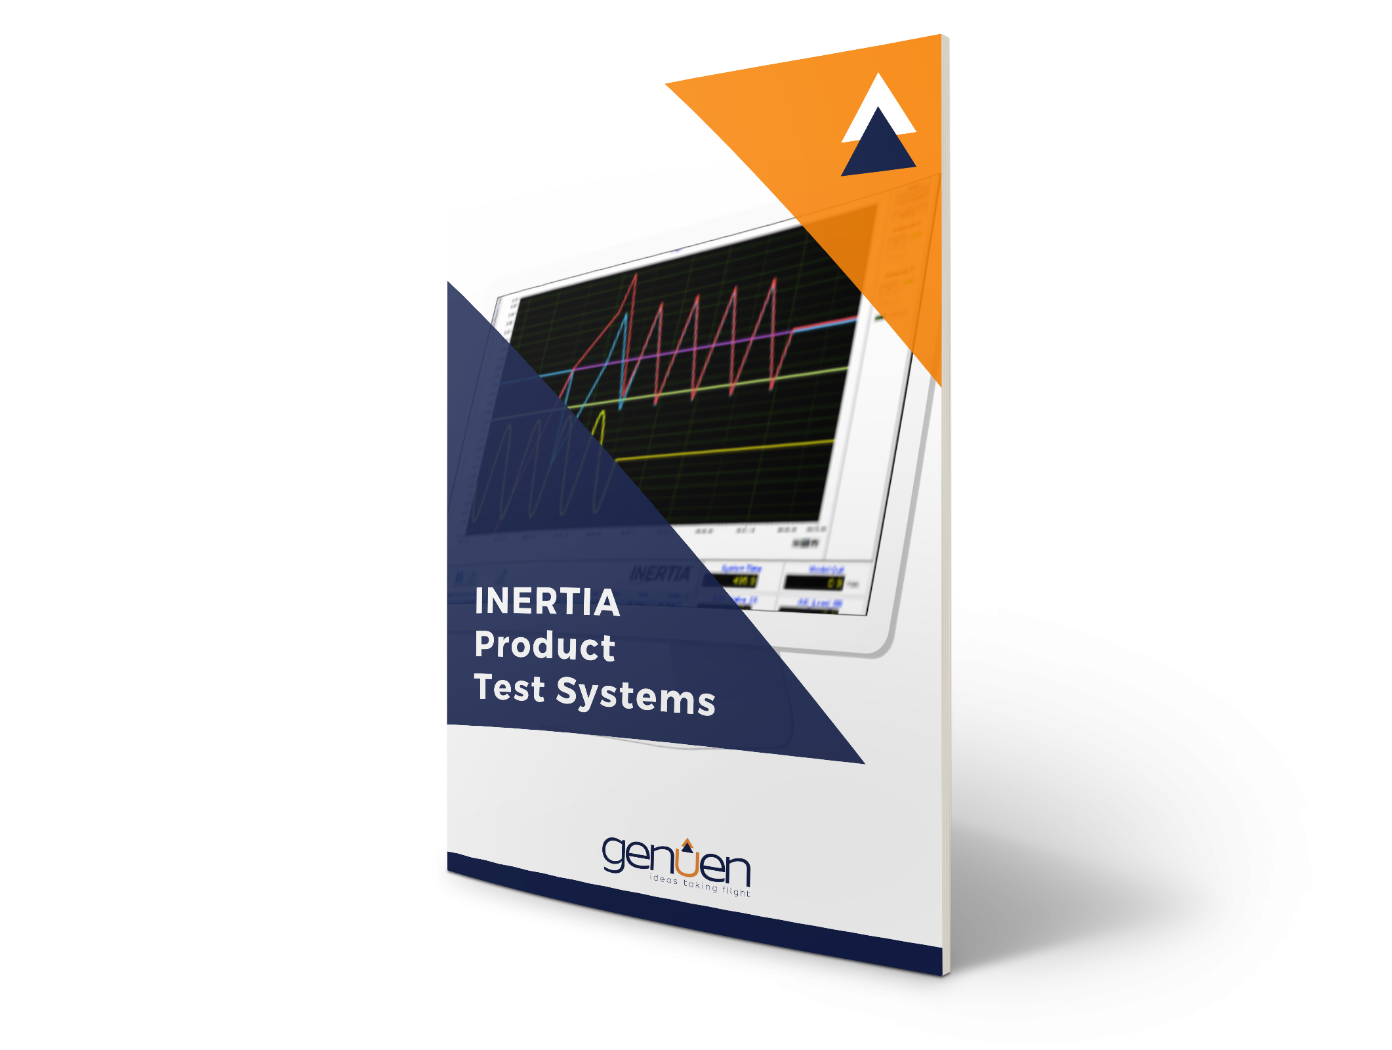 3D INERTIA Product Test System